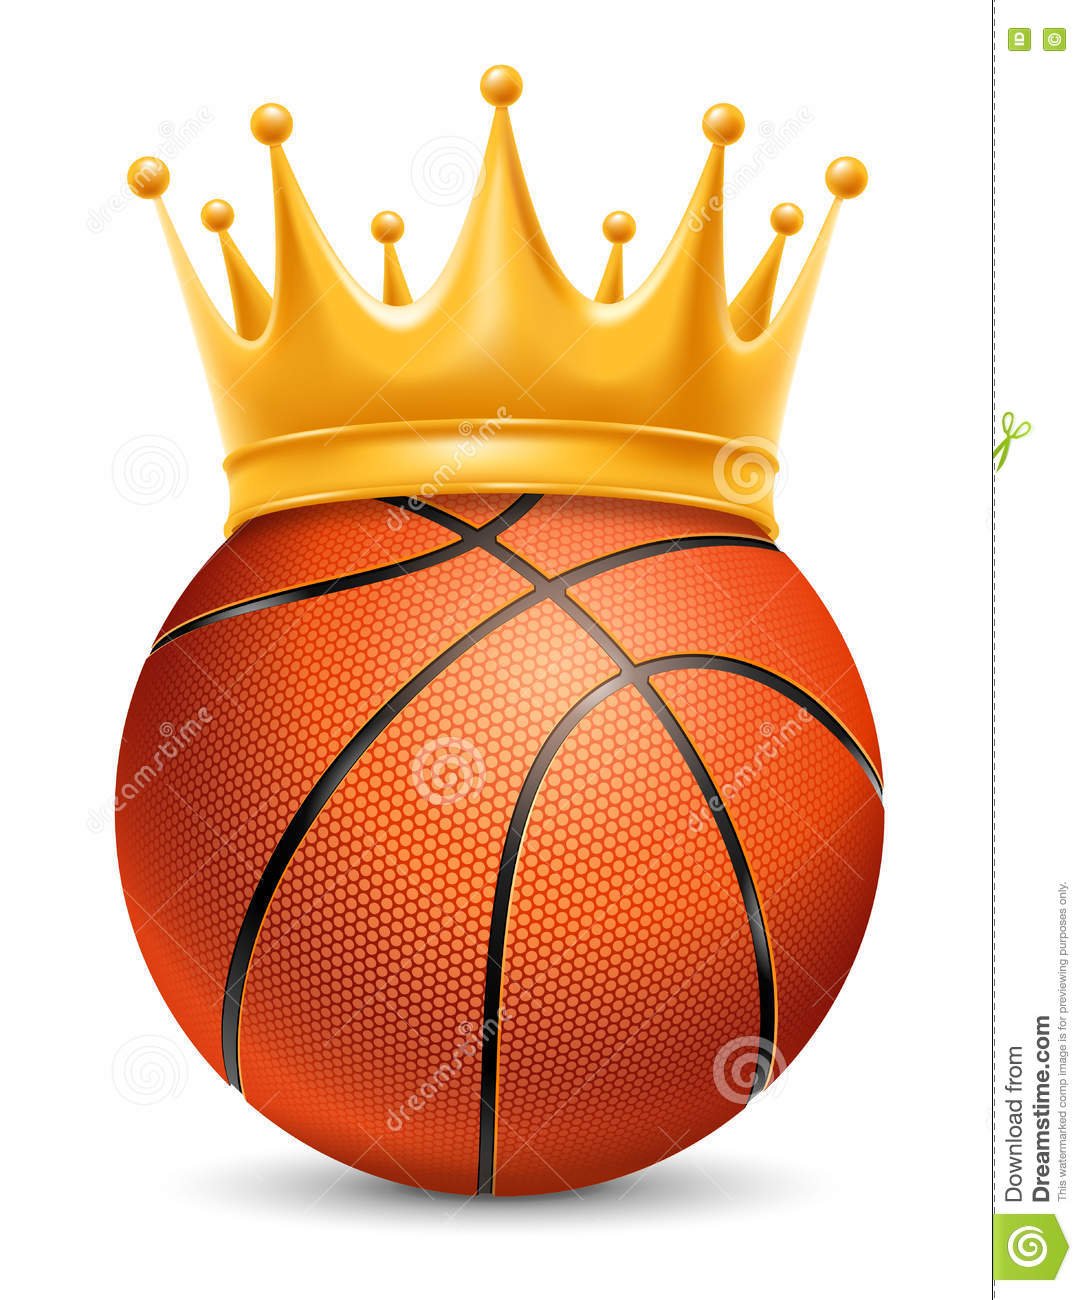 Basketball Ball In Crown Stock Vector. Illustration Of